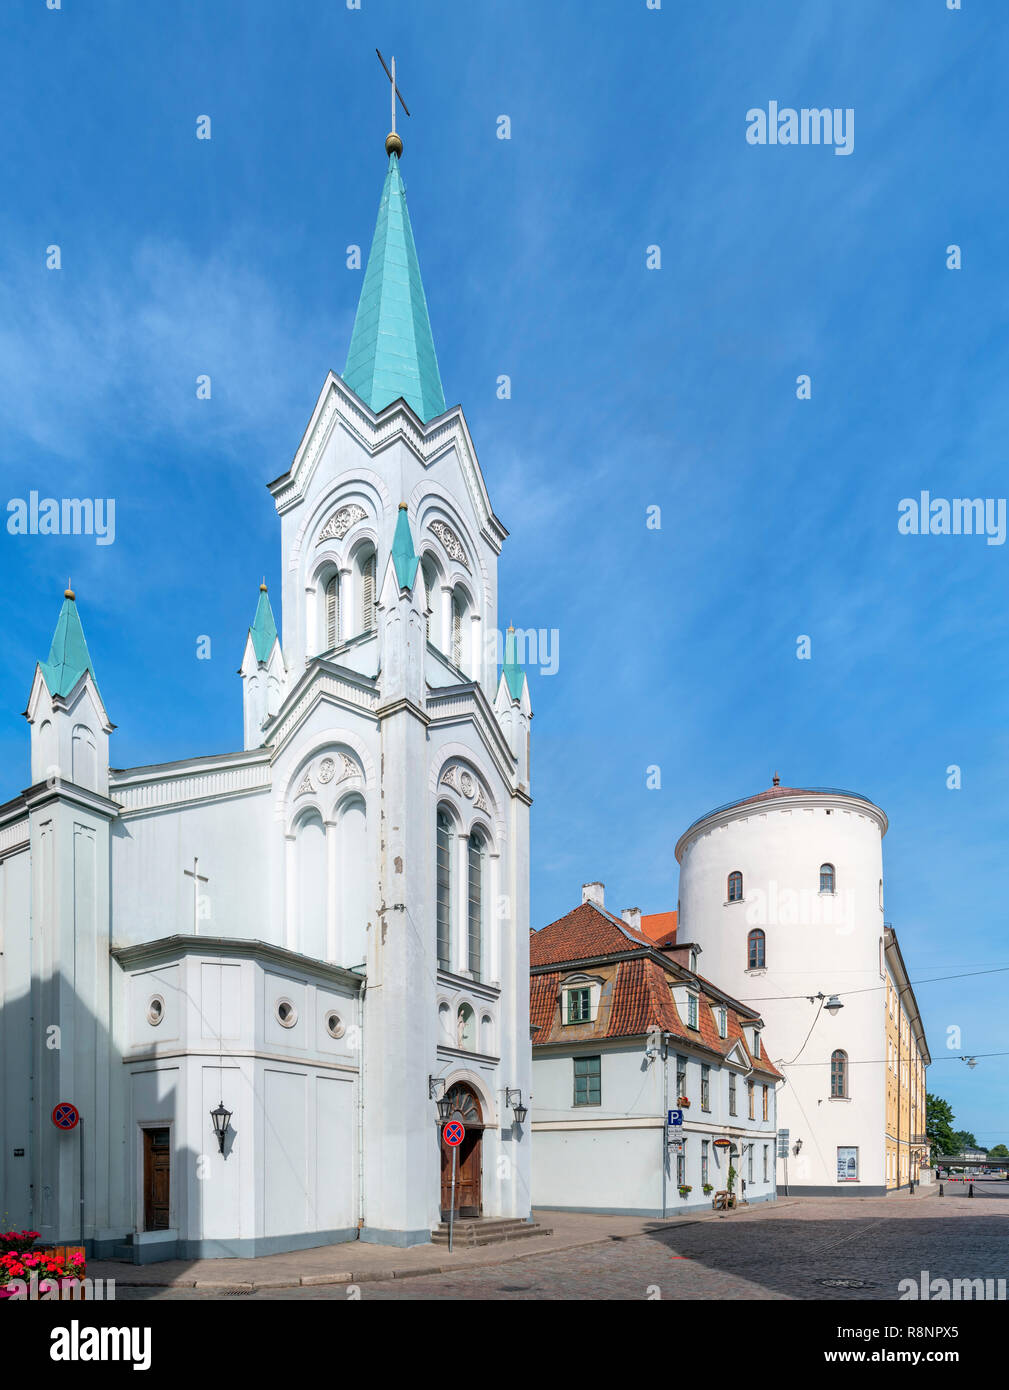 Our Lady of Sorrows church and Riga Castle (Rīgas pils), Pils iela, Riga, Latvia - Stock Image